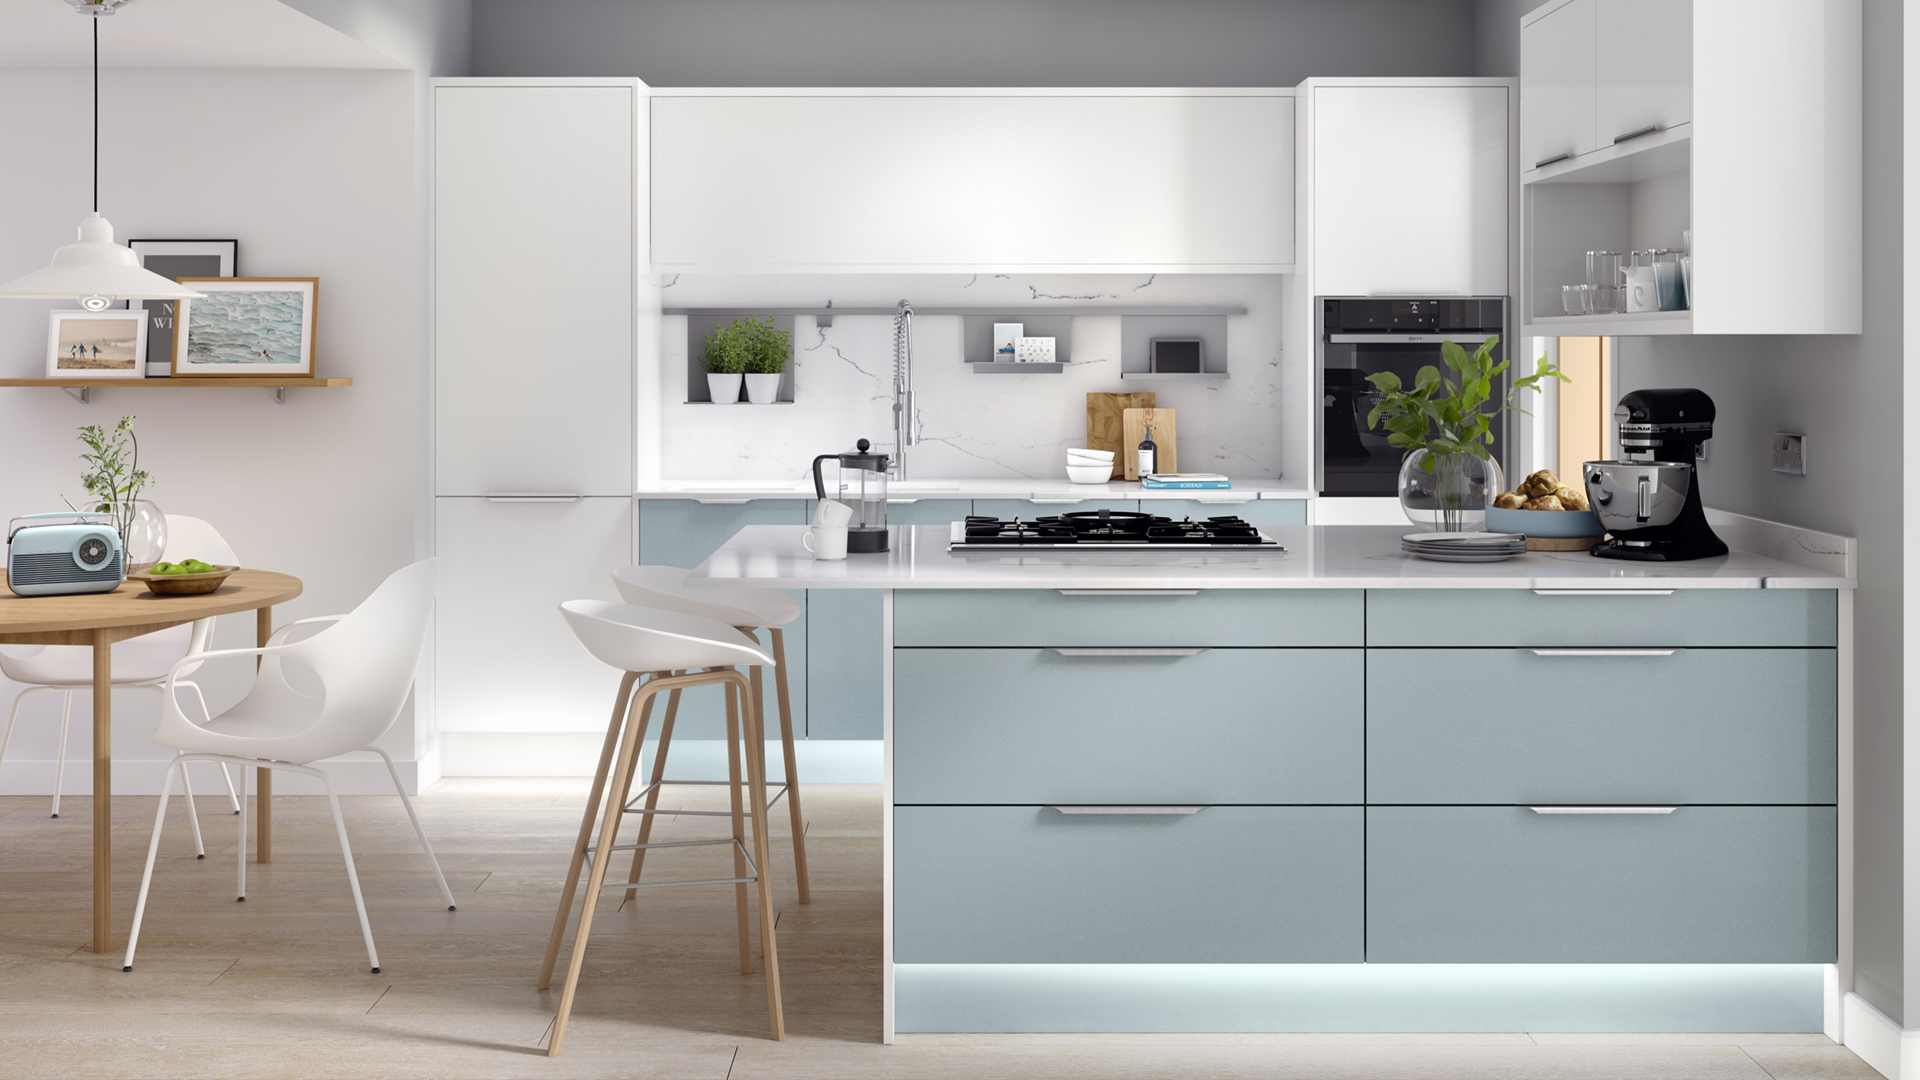 Harts Kitchens - Dorset Kitchen Company. We Do Things Differently